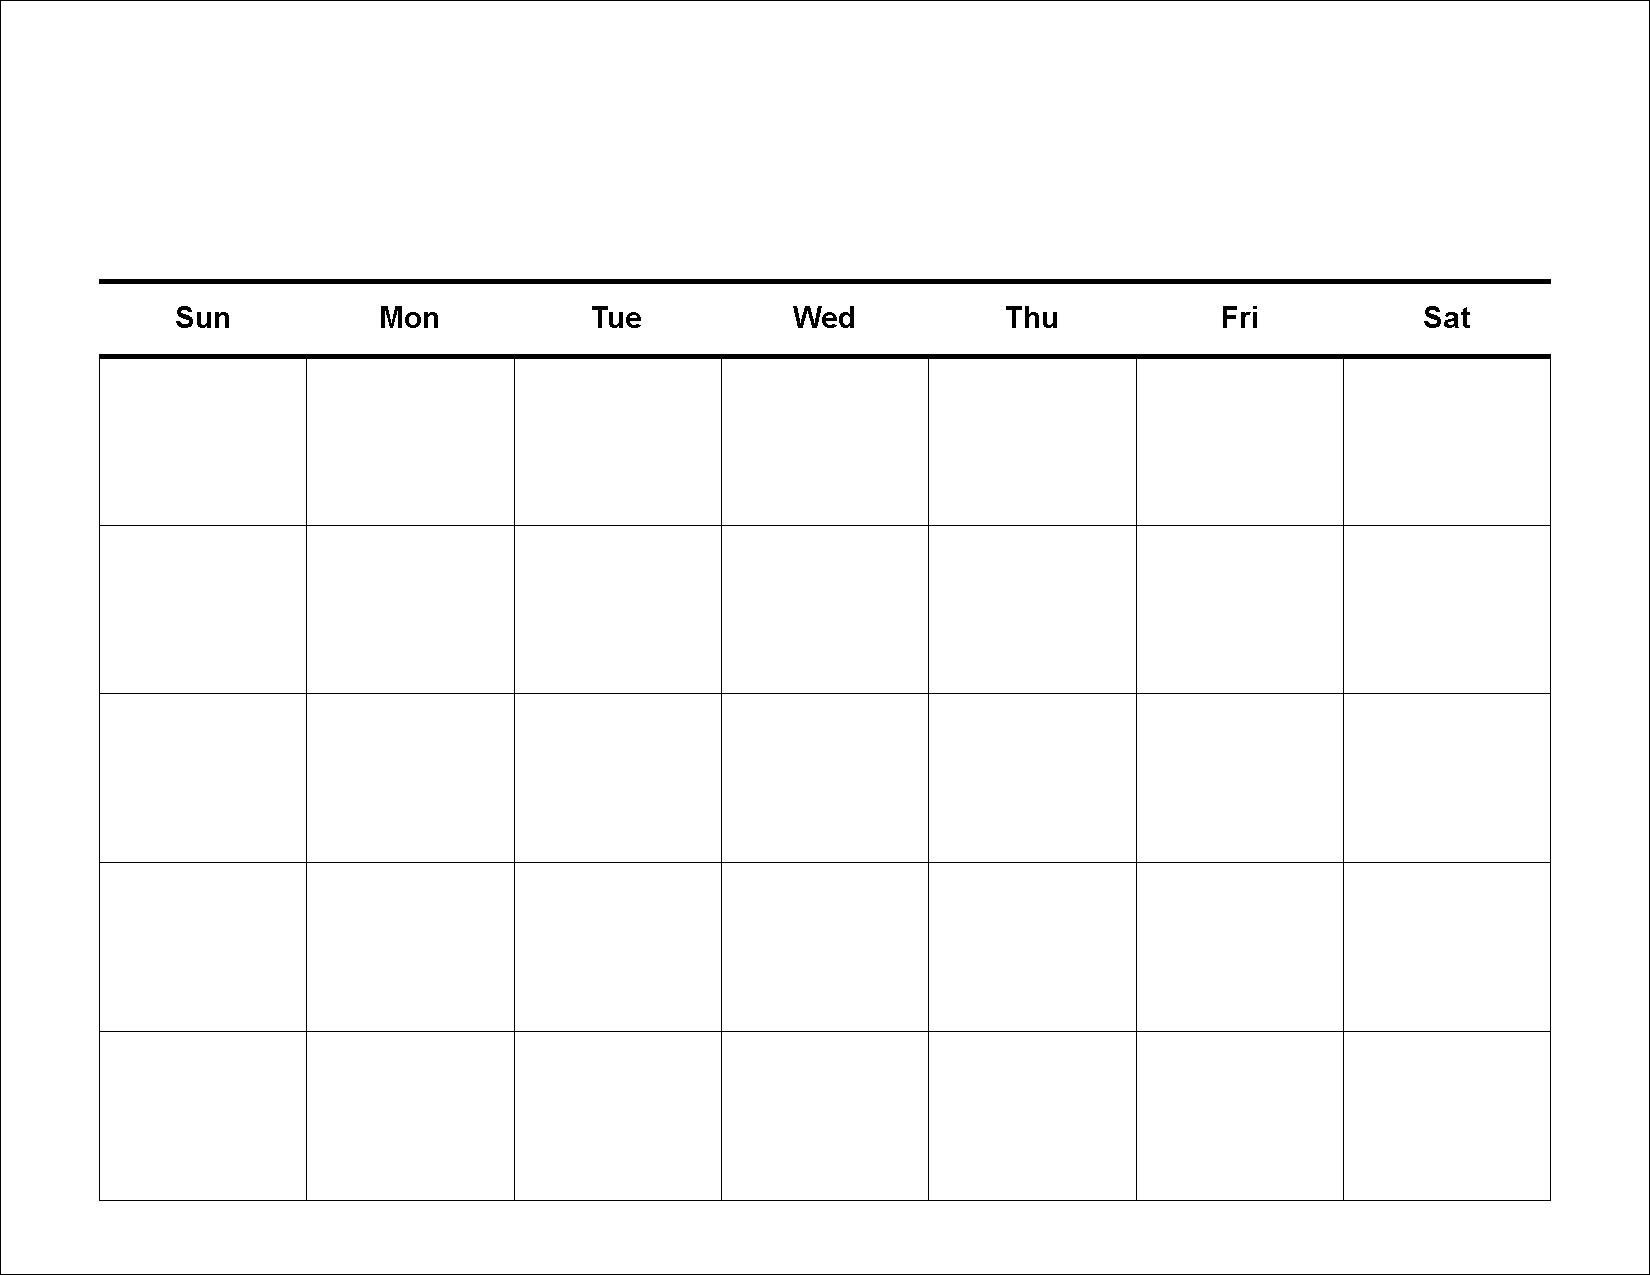 Monthly Calendar To Print Image For 5 Week Calendar Template - Free_5 Week Blank Calendar Template